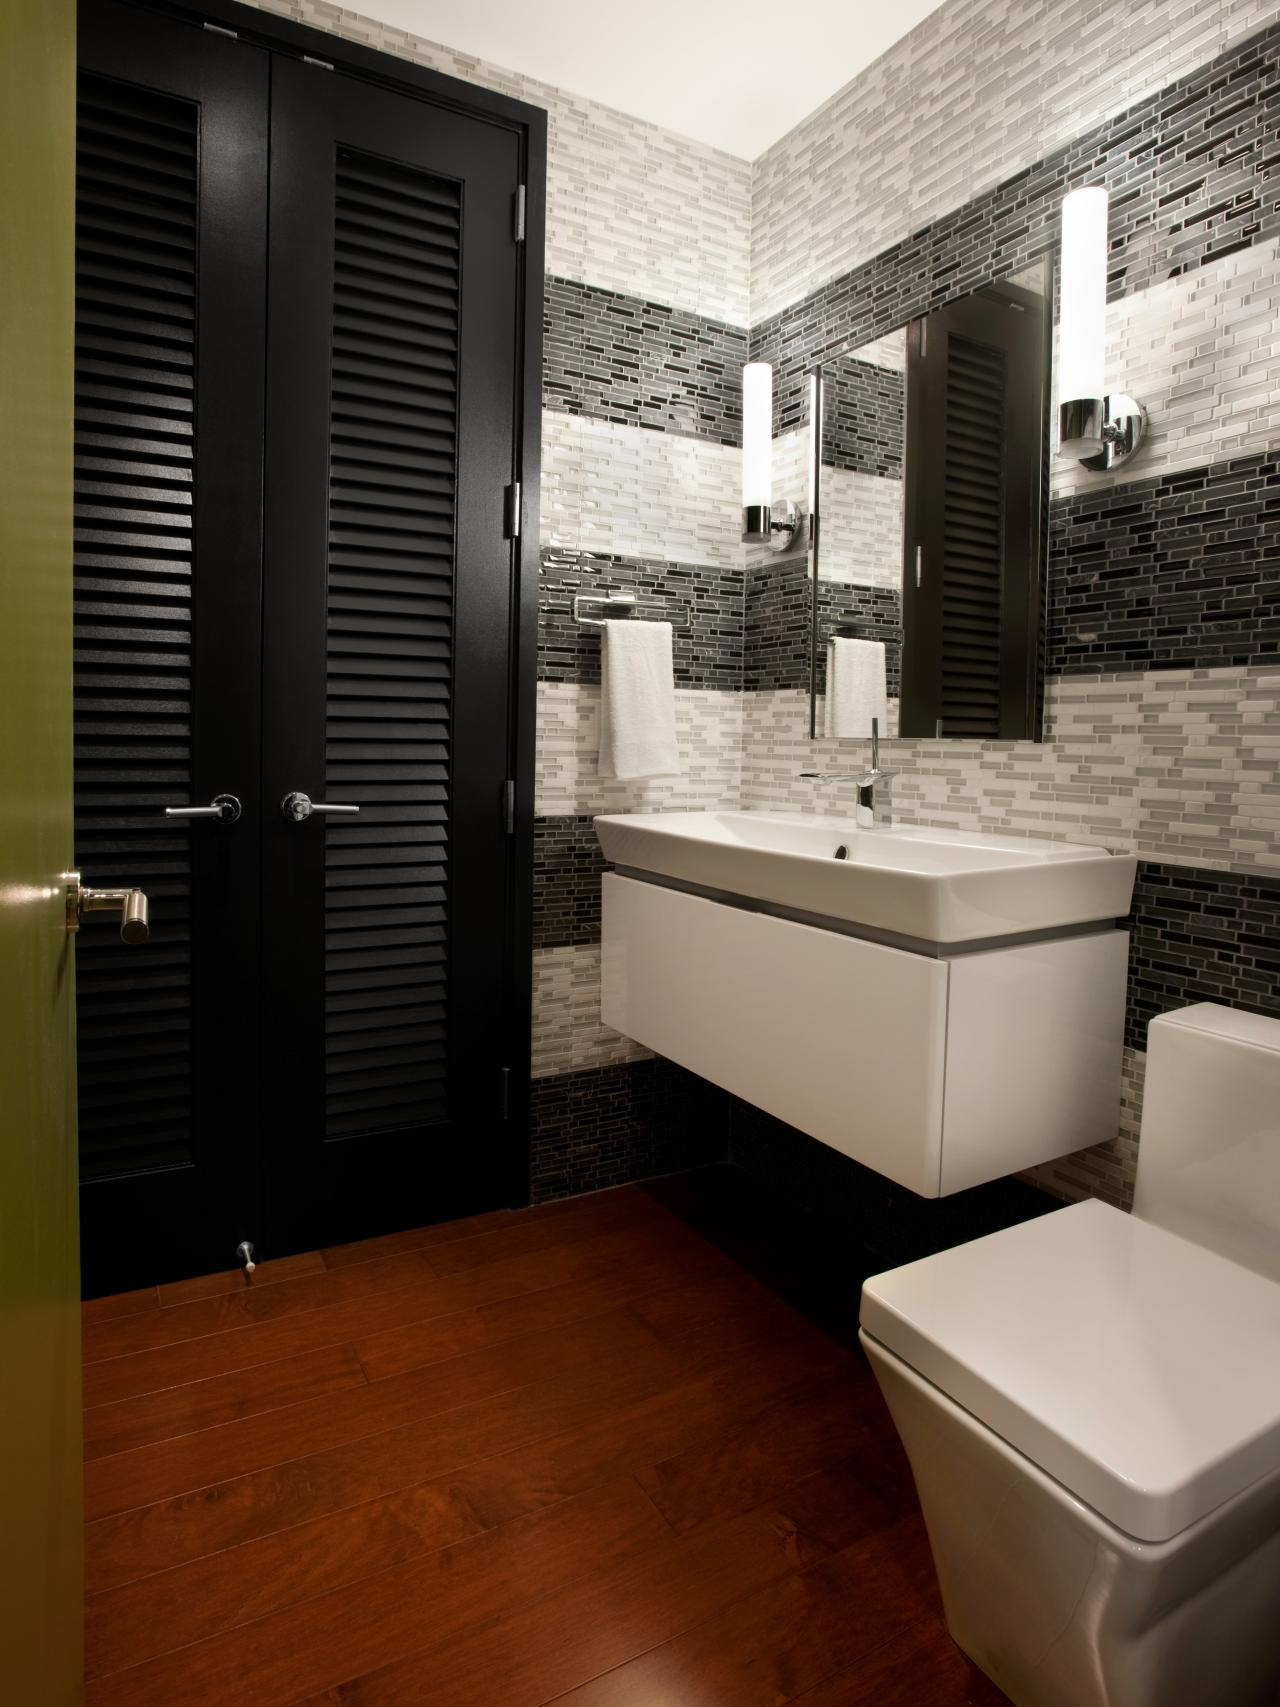 Modern Bathroom Images modern bathroom design ideas: pictures & tips from hgtv | hgtv